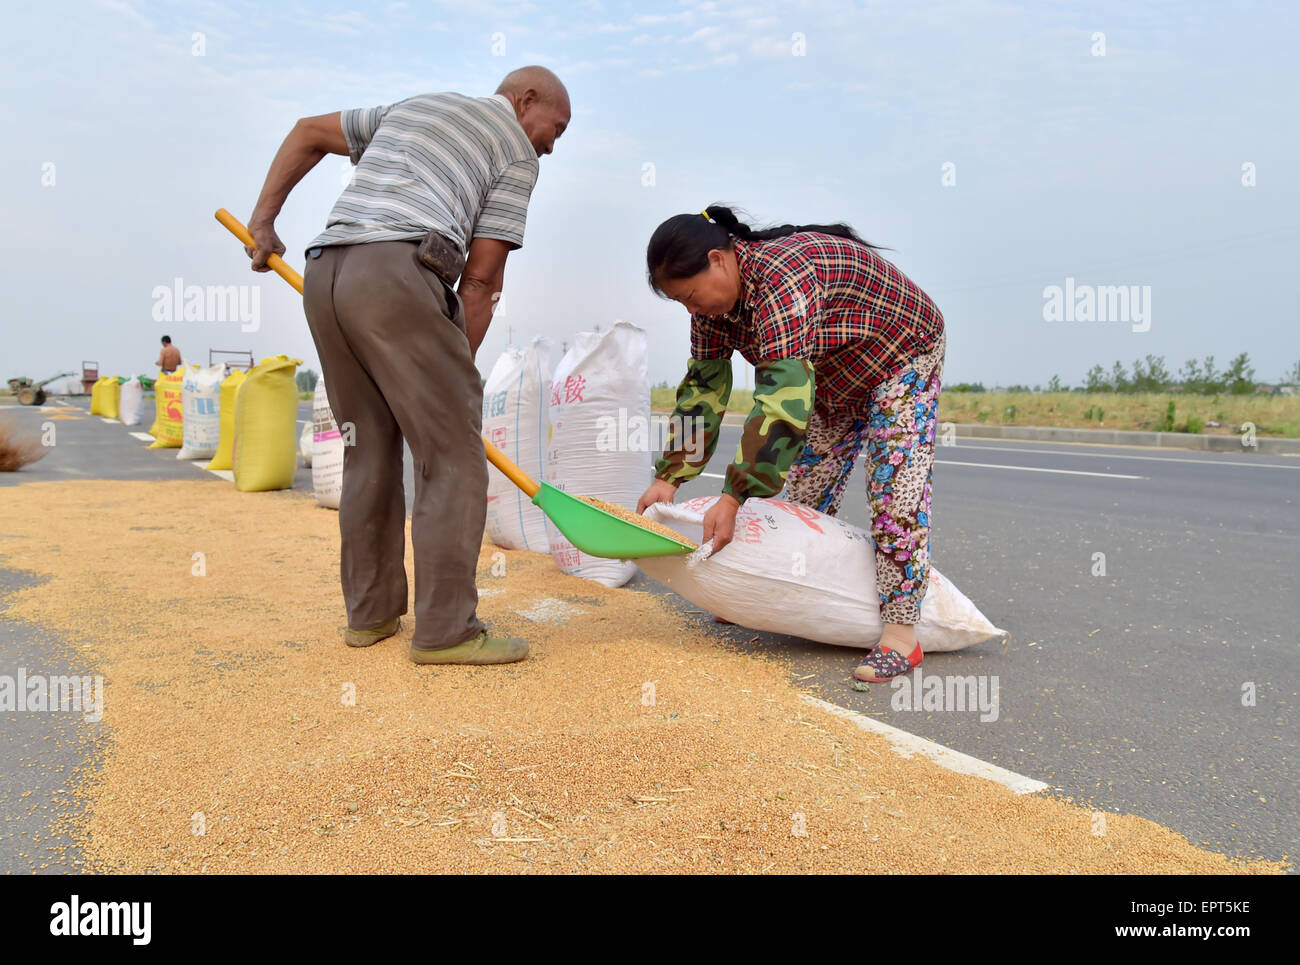 Xiangyang, China. 21st May, 2015. Two farmer labors work in the days of wheat harvest in Xiangyang, Hubei province, - Stock Image